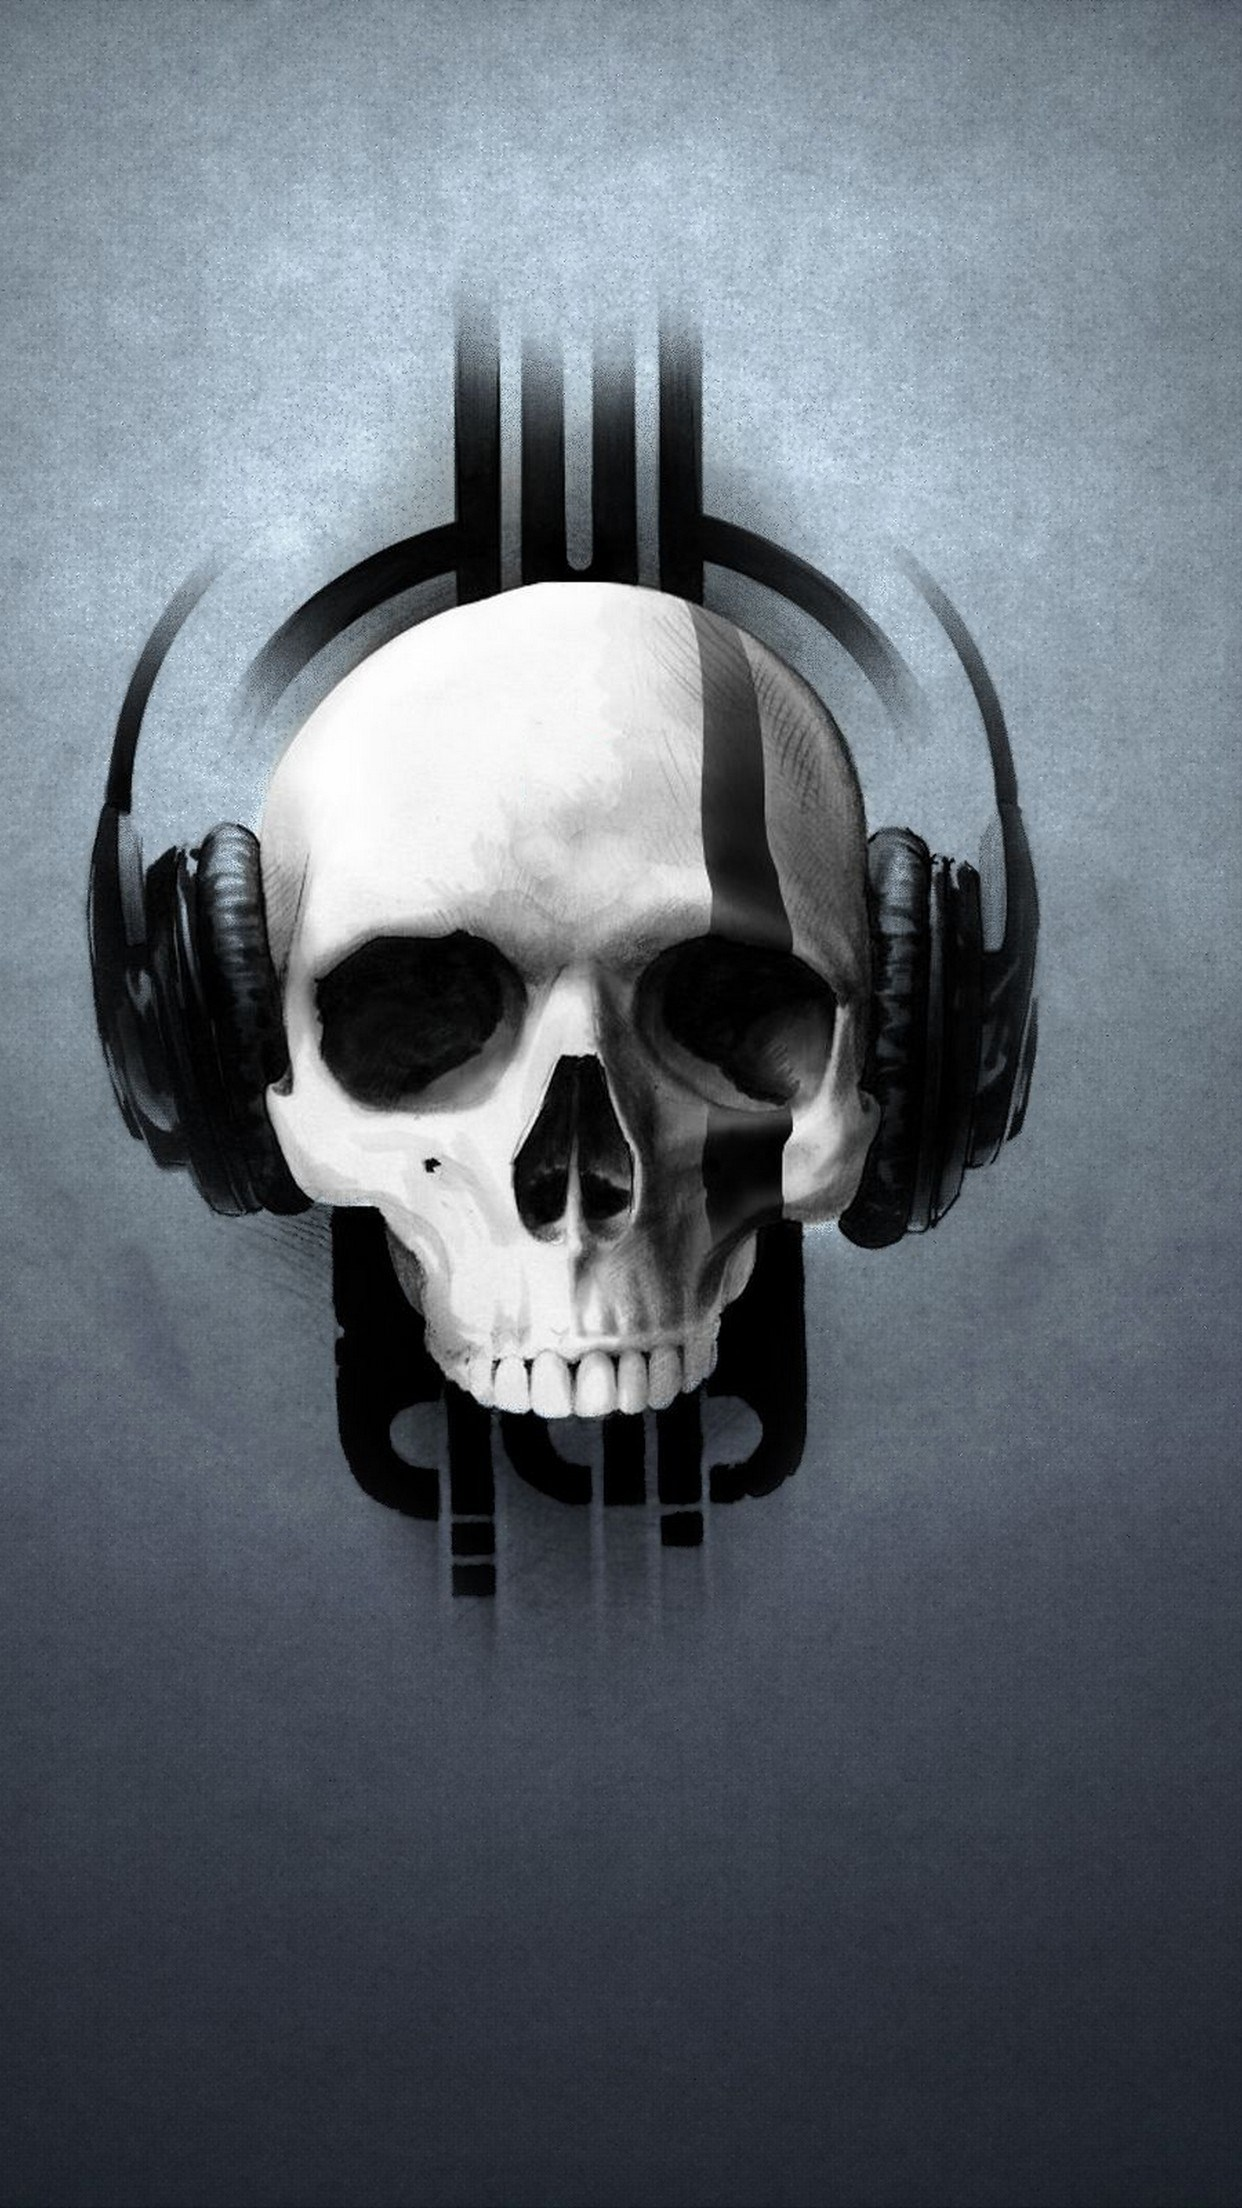 Music Skull Wallpaper For Iphone X 8 7 6 Free Download